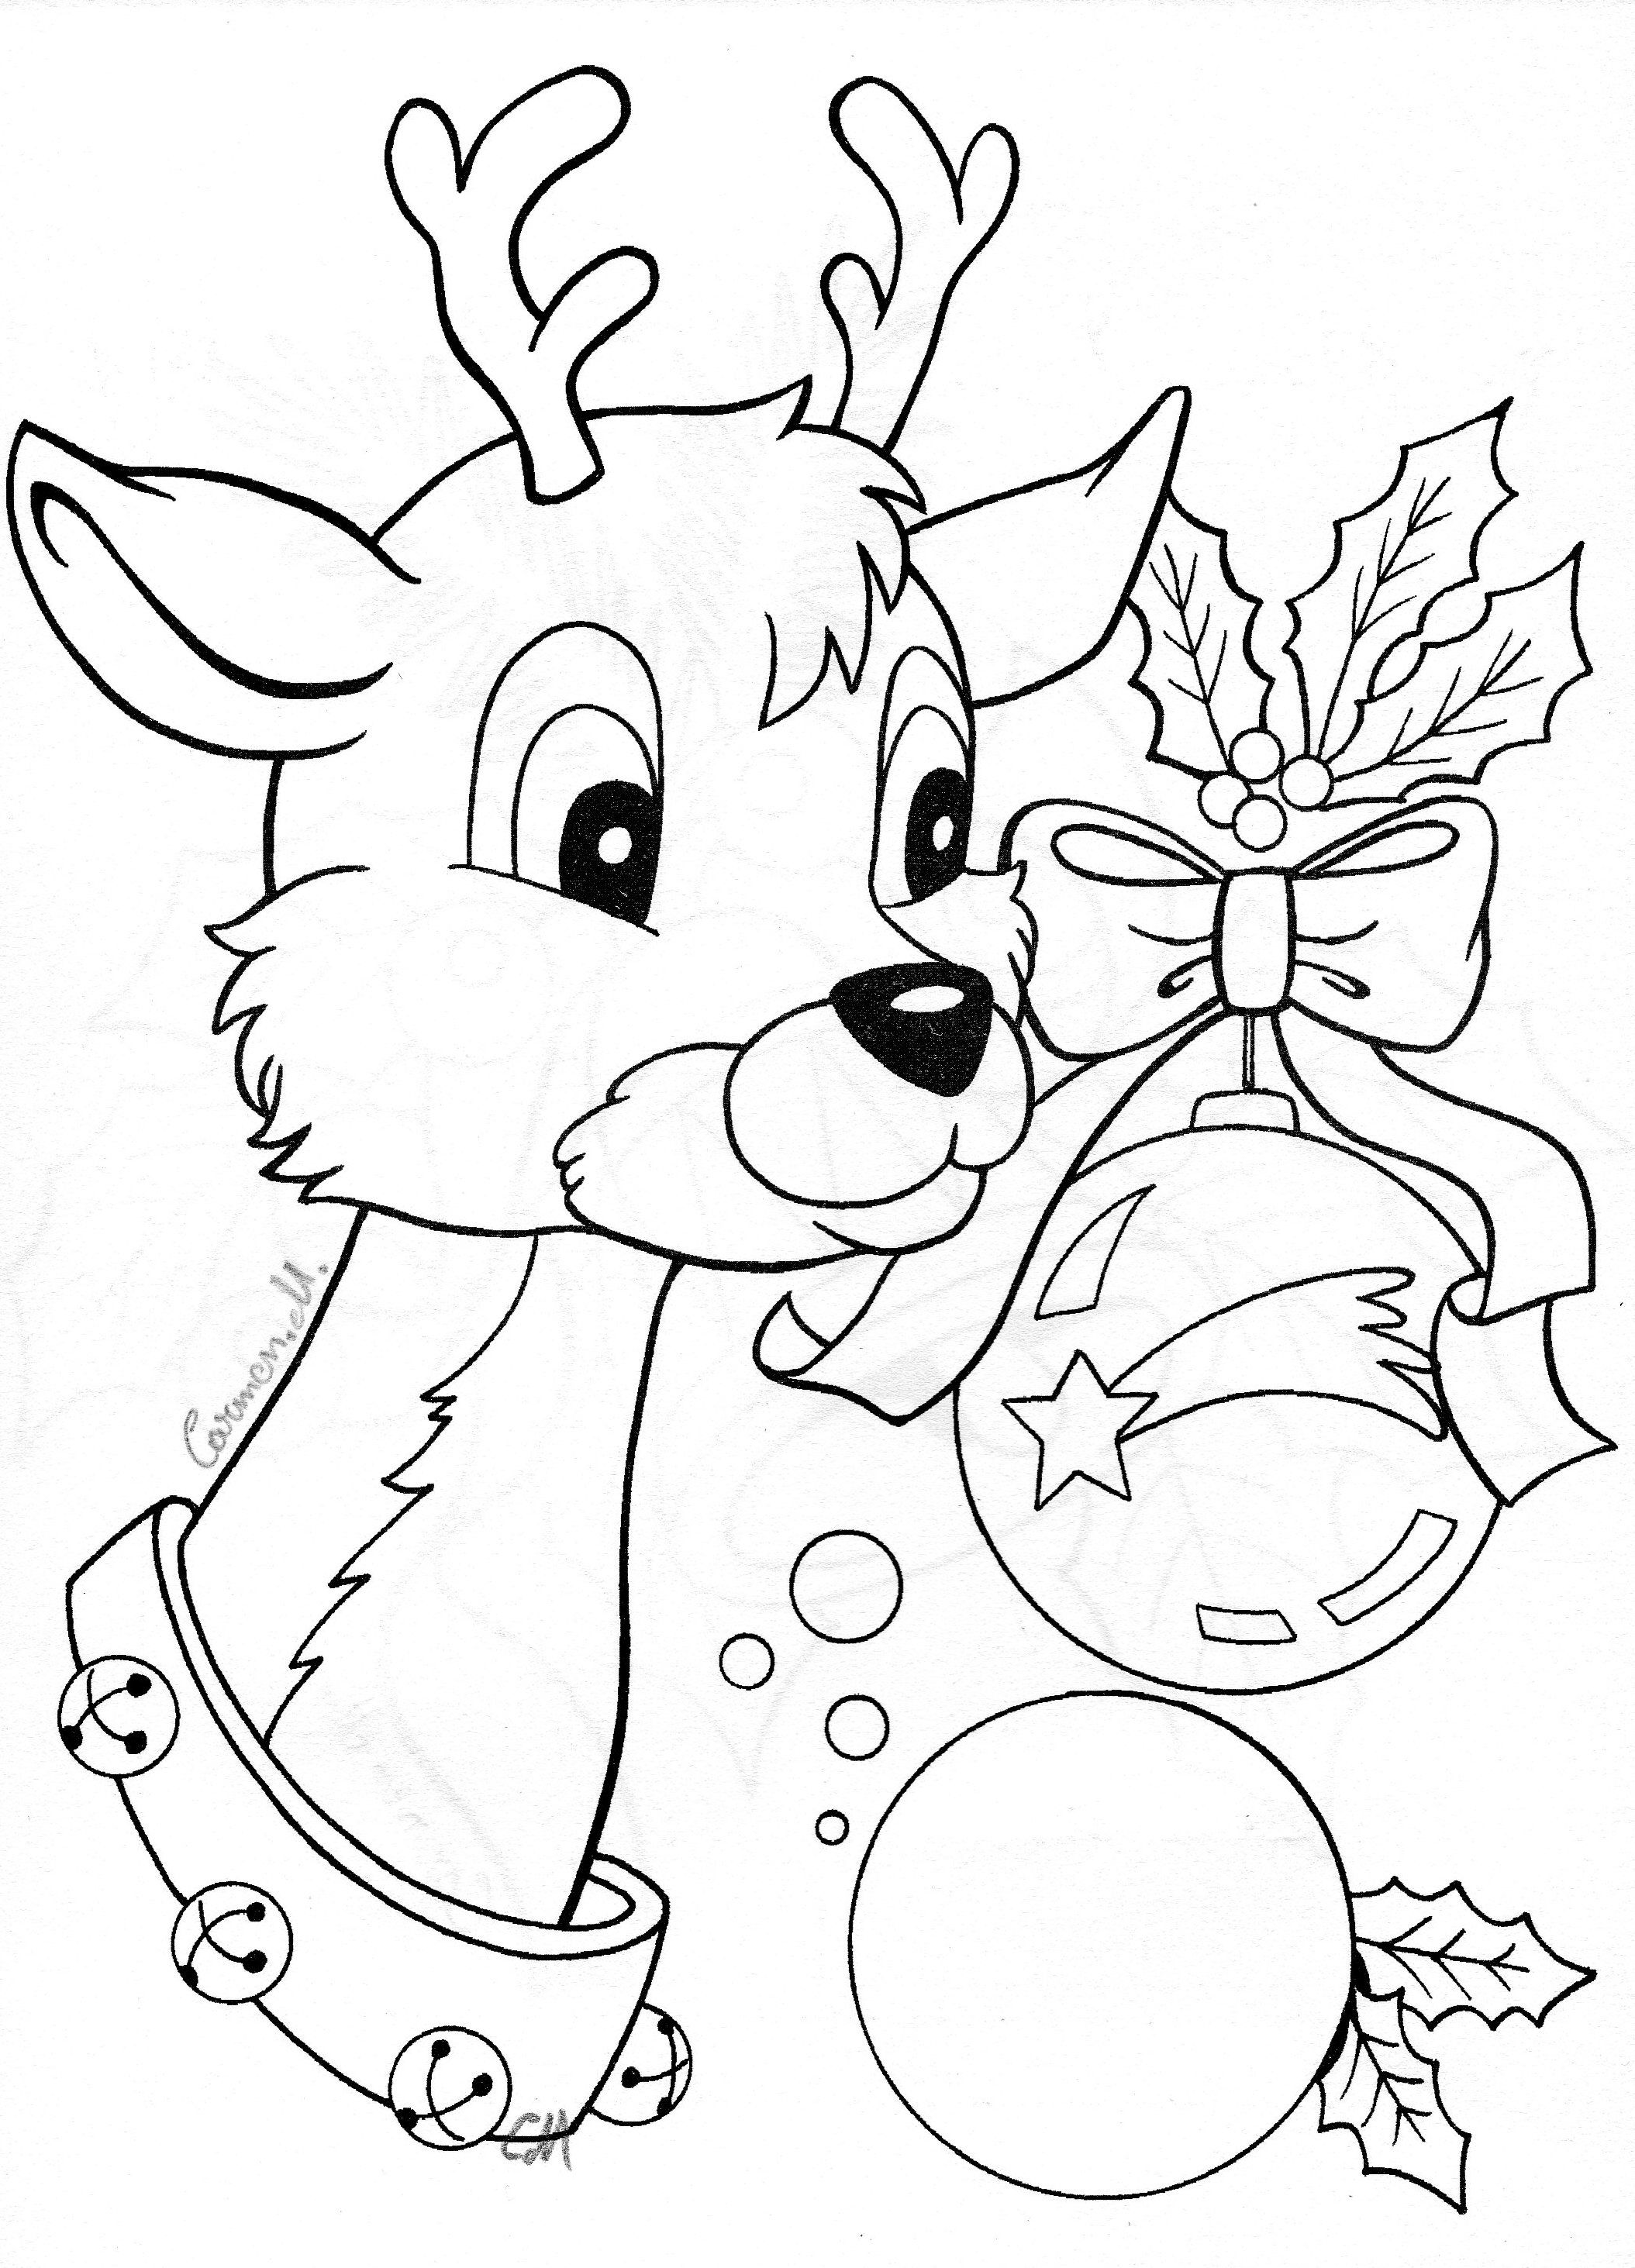 - Reindeer (With Images) Coloring Pages, Christmas Coloring Pages